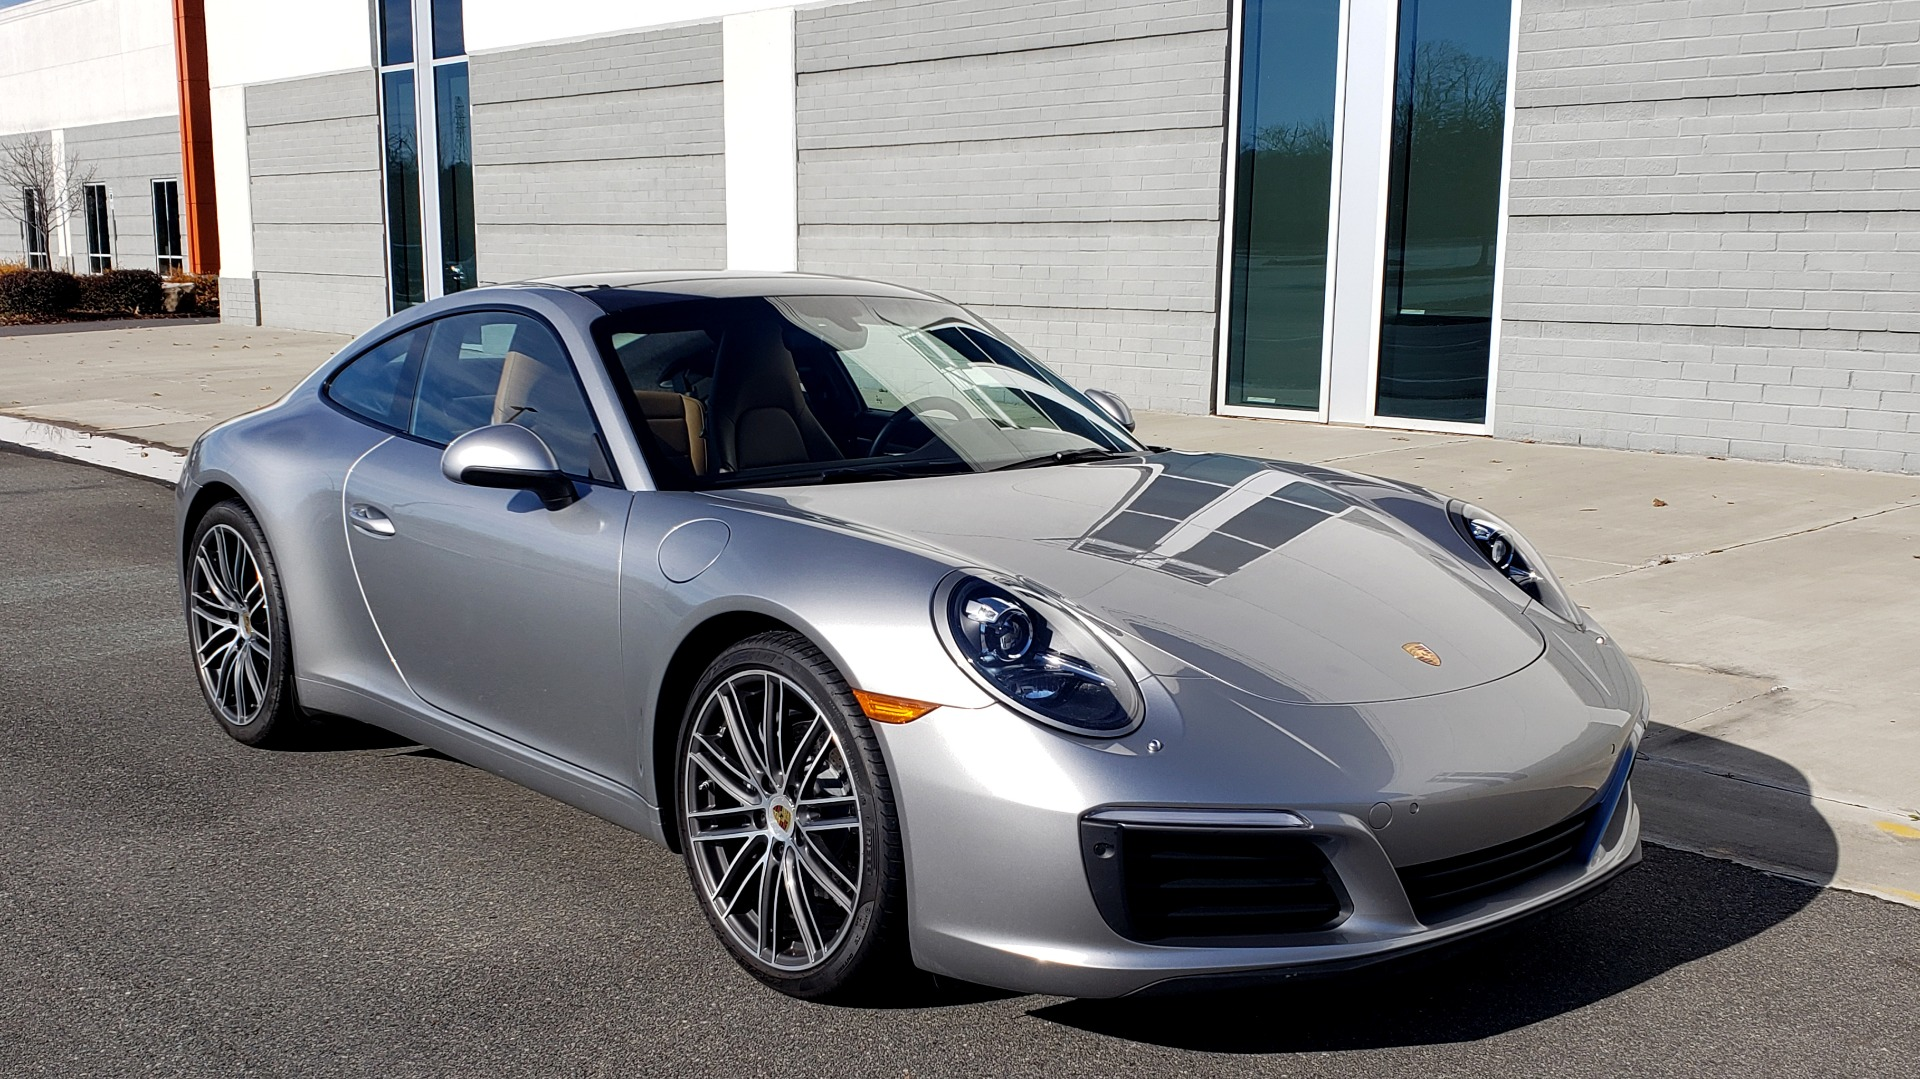 Used 2017 Porsche 911 CARRERA COUPE / 3.0L / 7-SPD MAN / NAV / PDLS / SUNROOF / REARVIEW for sale Sold at Formula Imports in Charlotte NC 28227 6